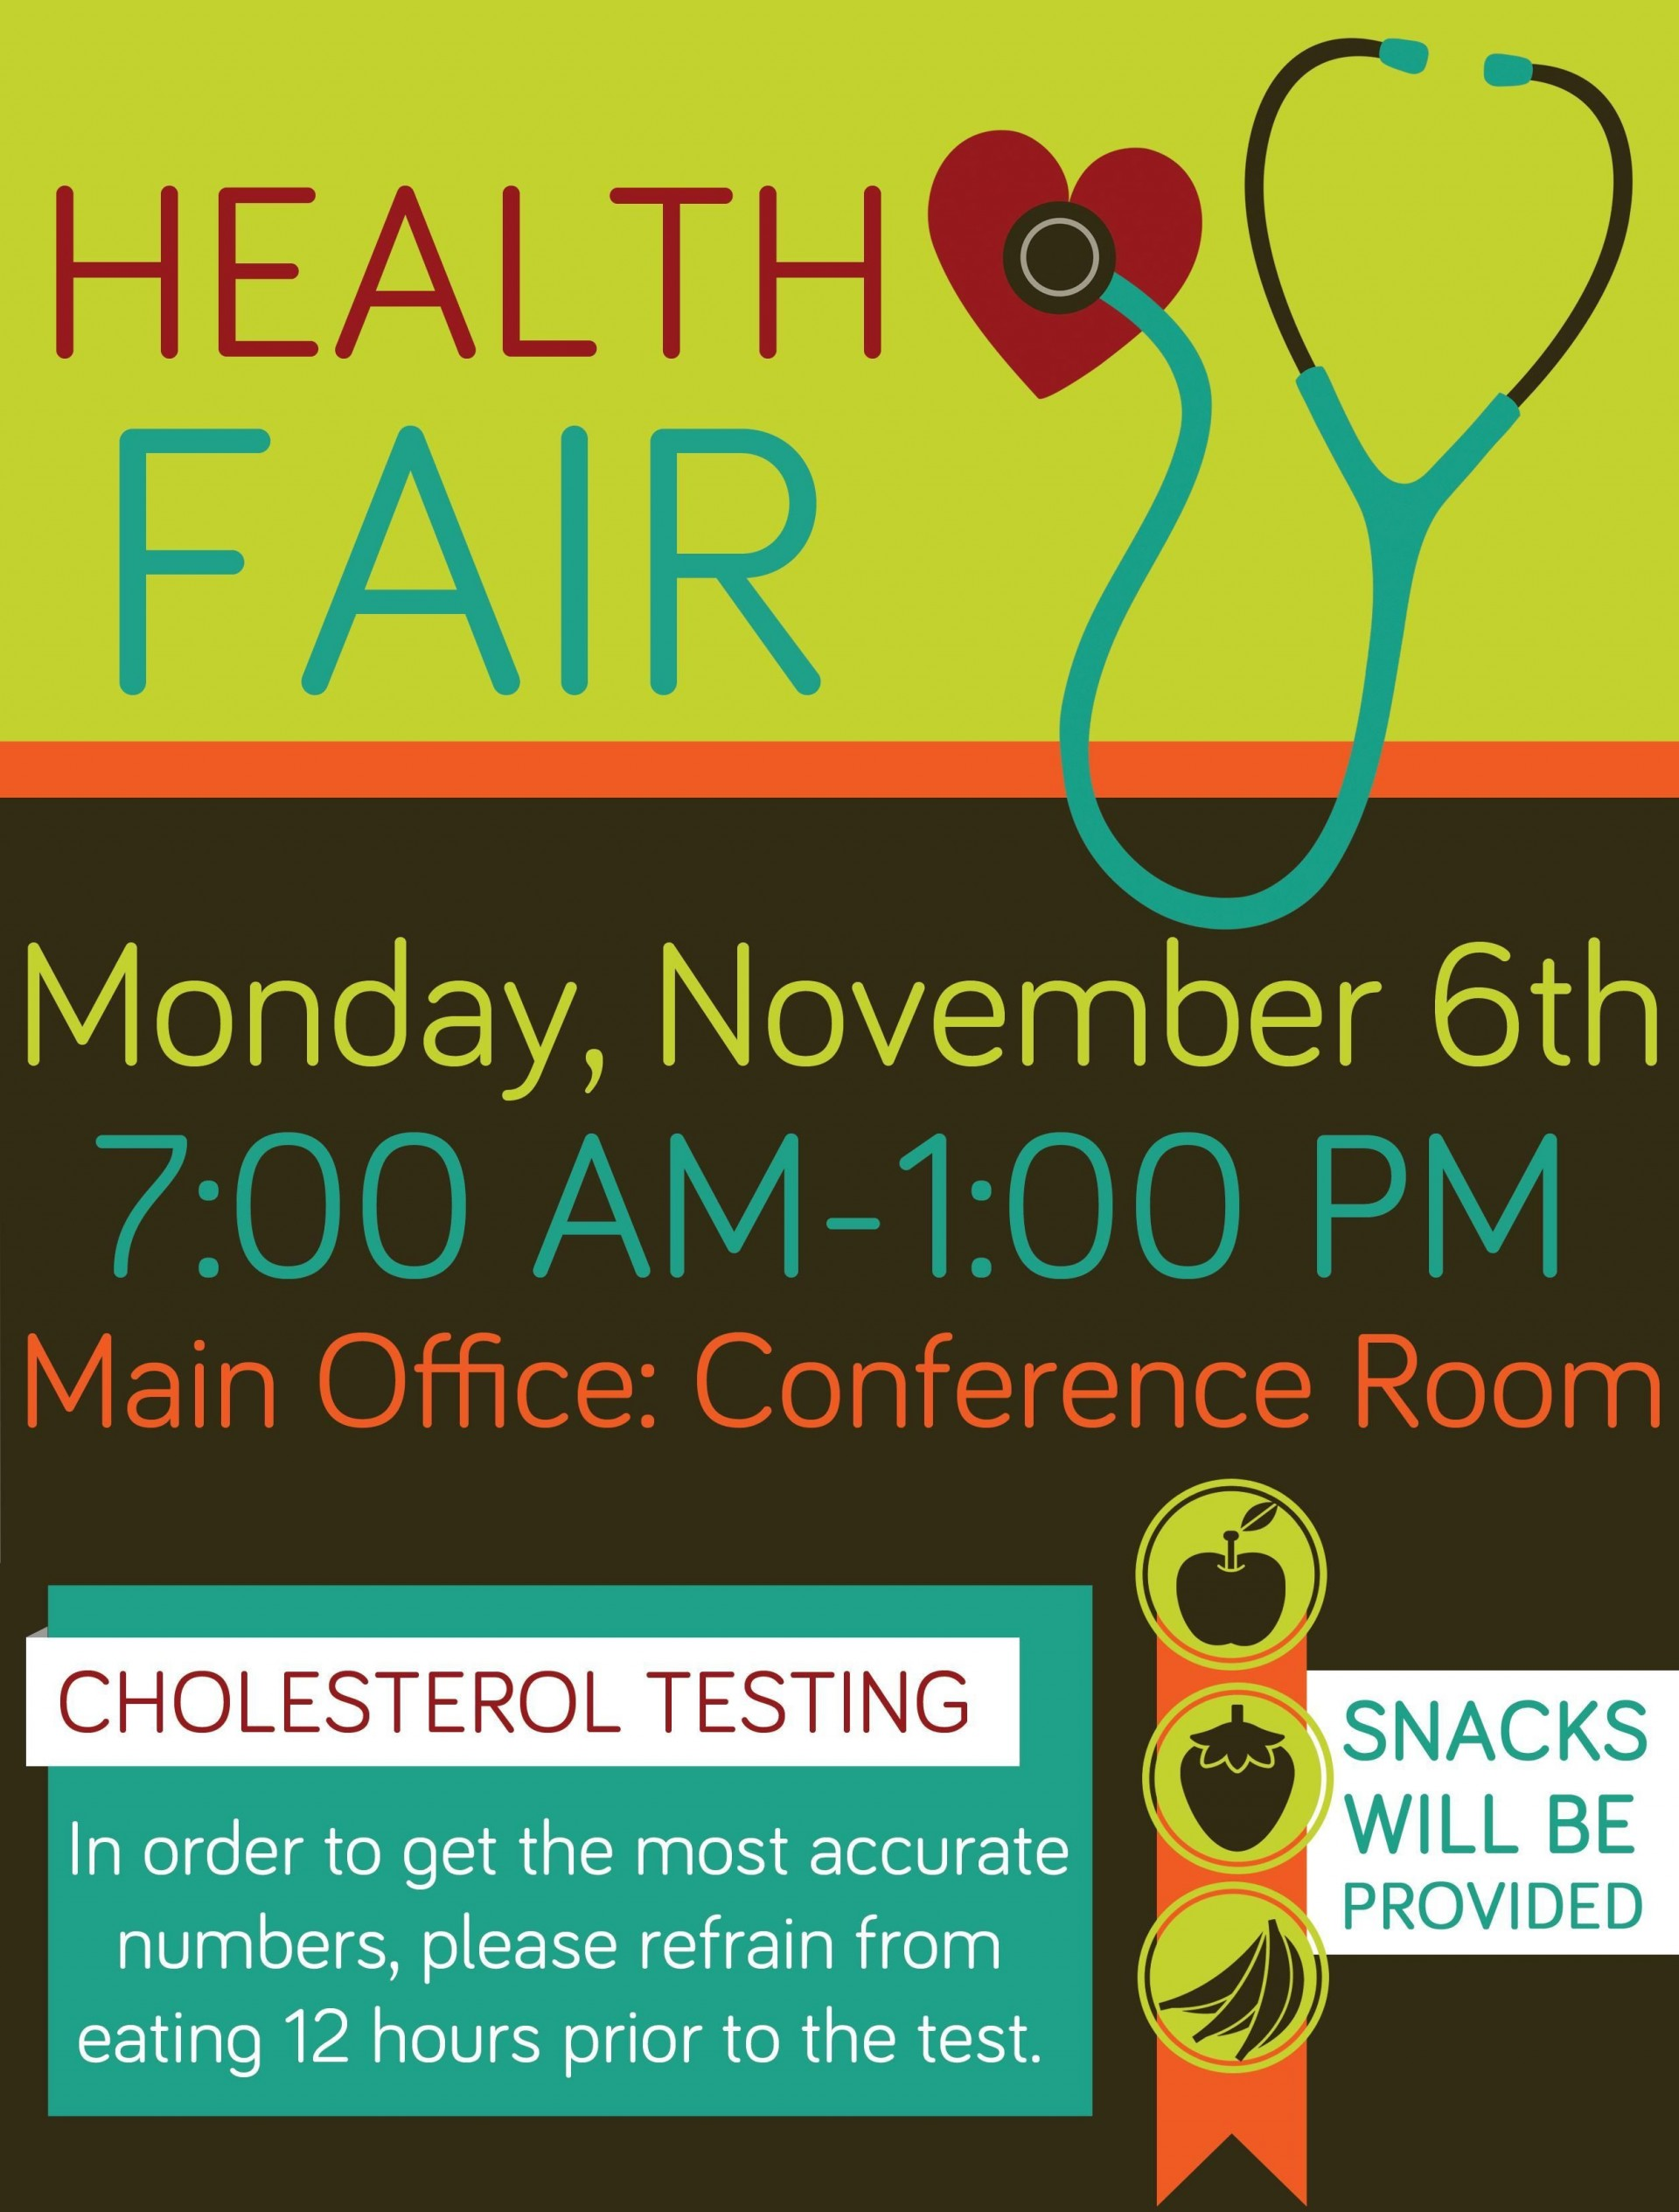 009 Fascinating Health Fair Flyer Template Highest Quality  And Wellnes Word1920